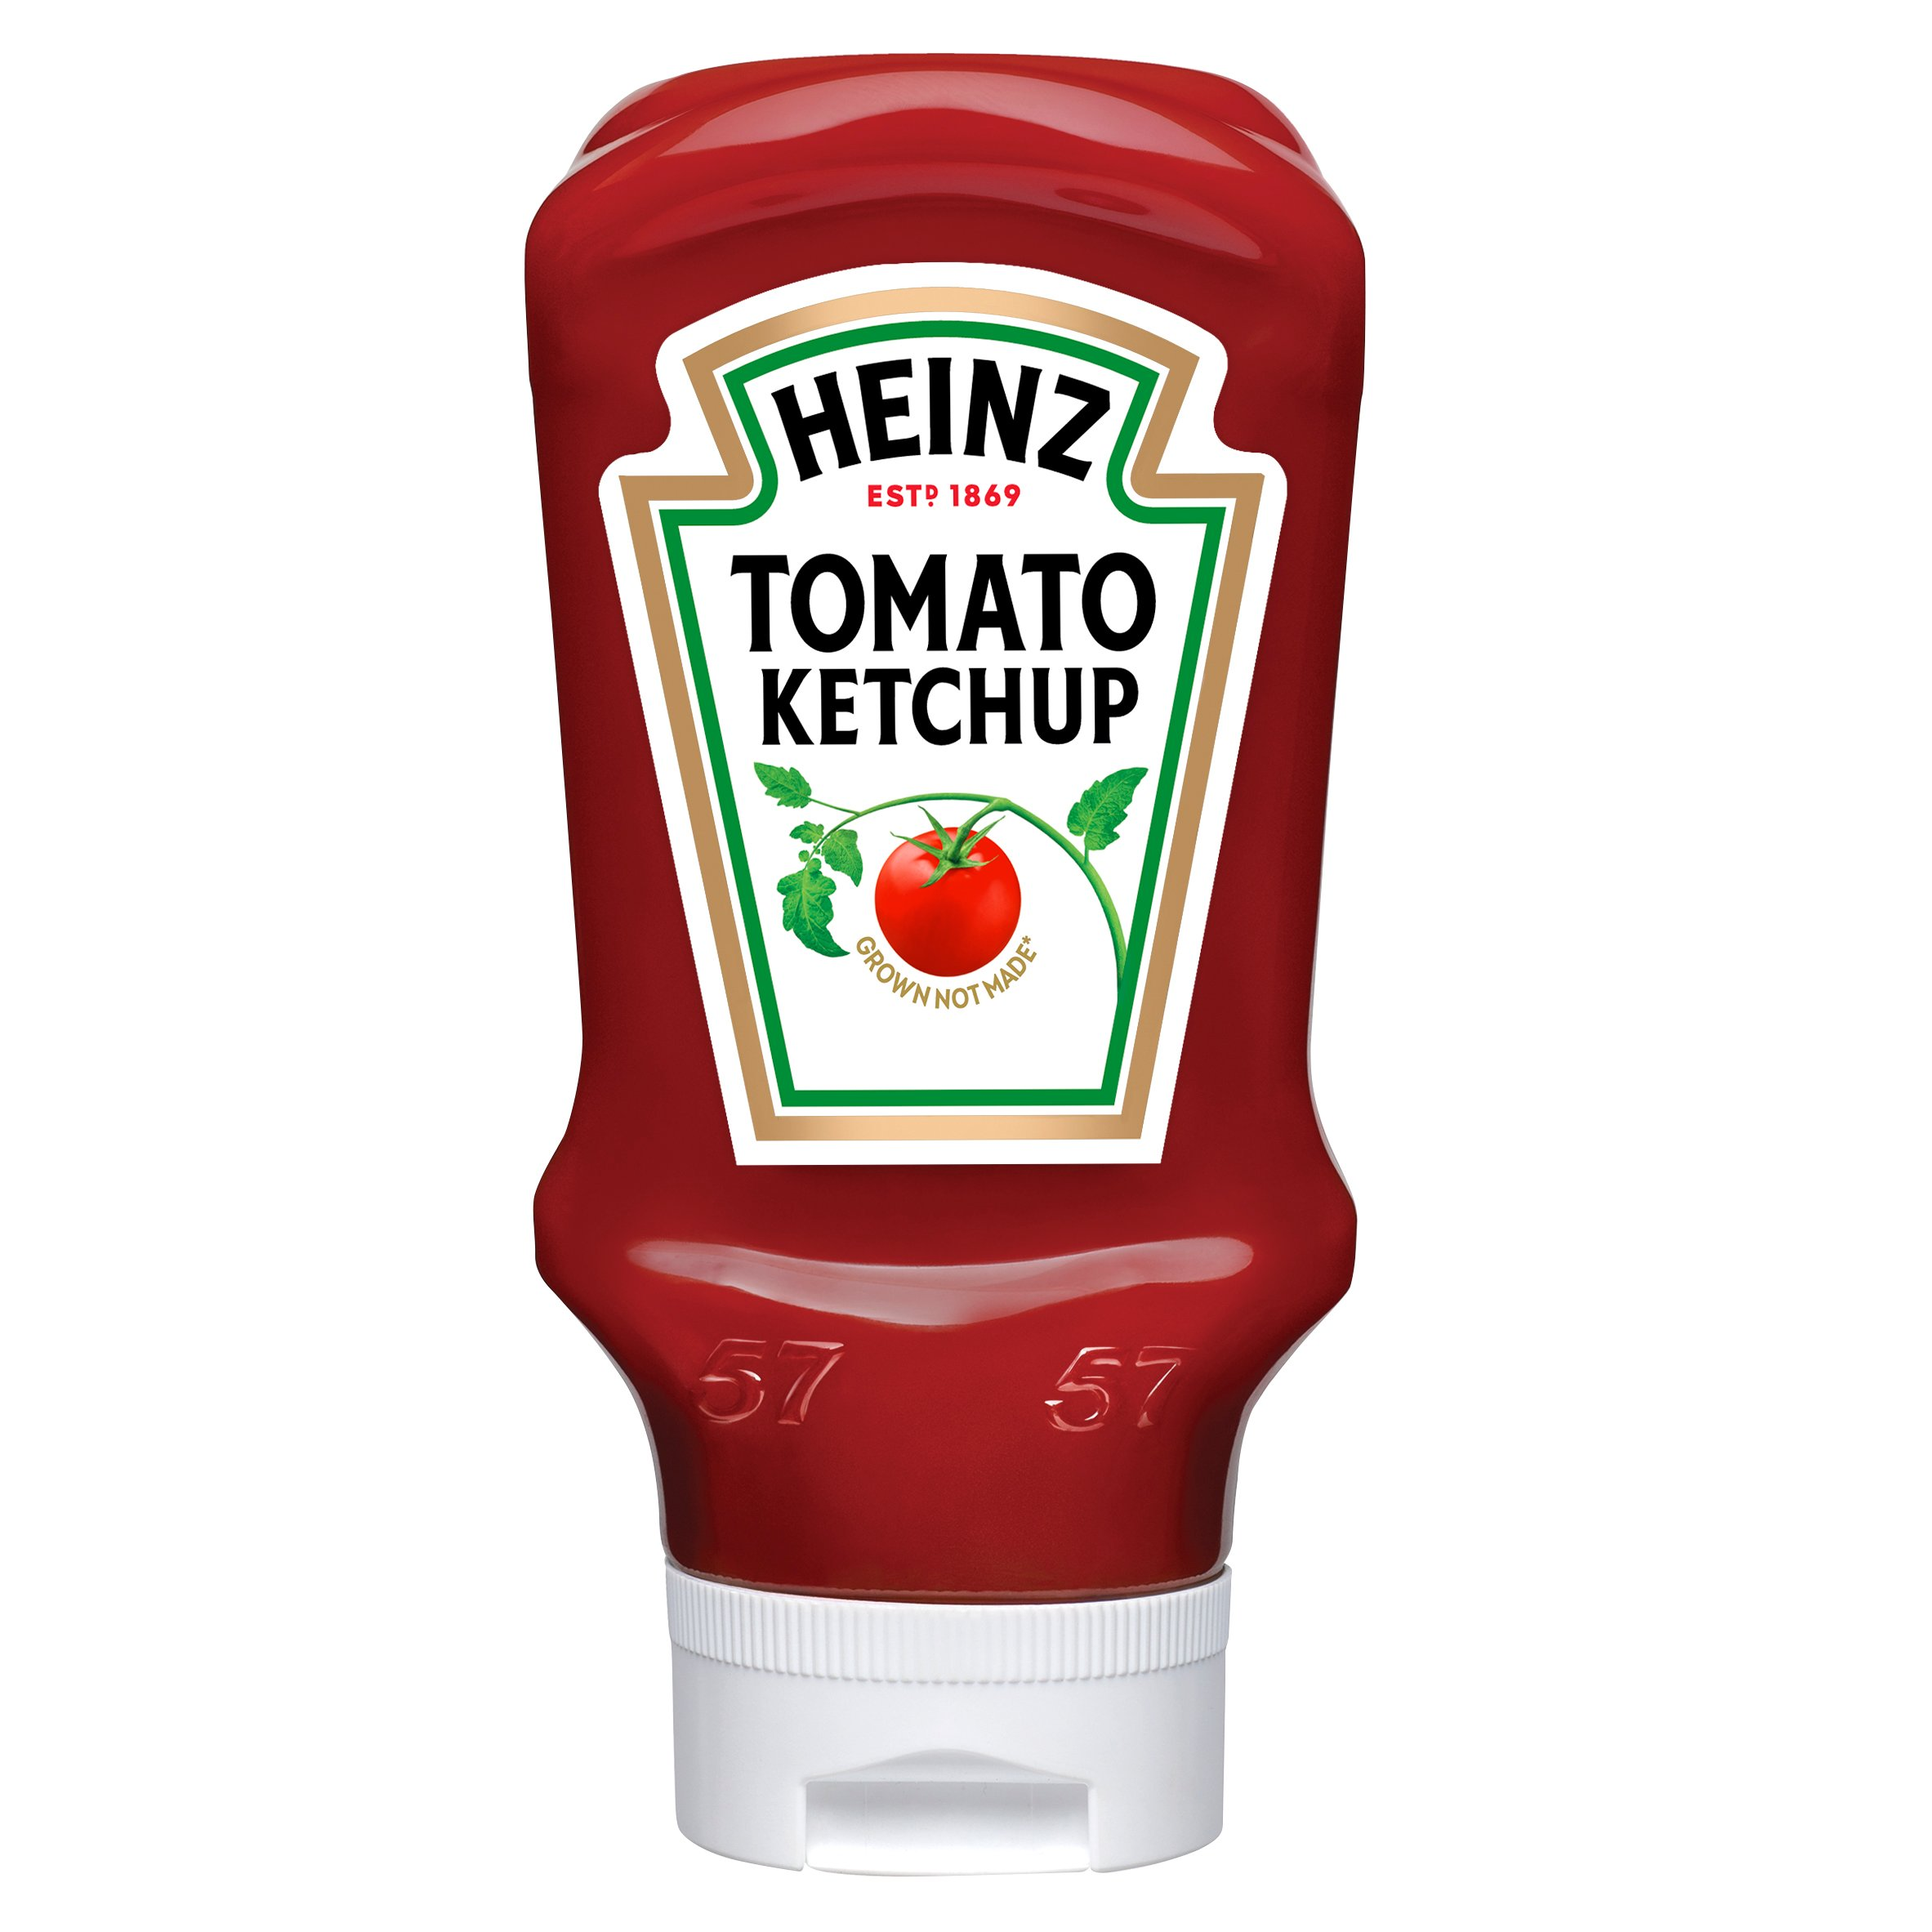 Photograph of 1 x 460g Heinz Tomato Ketchup product